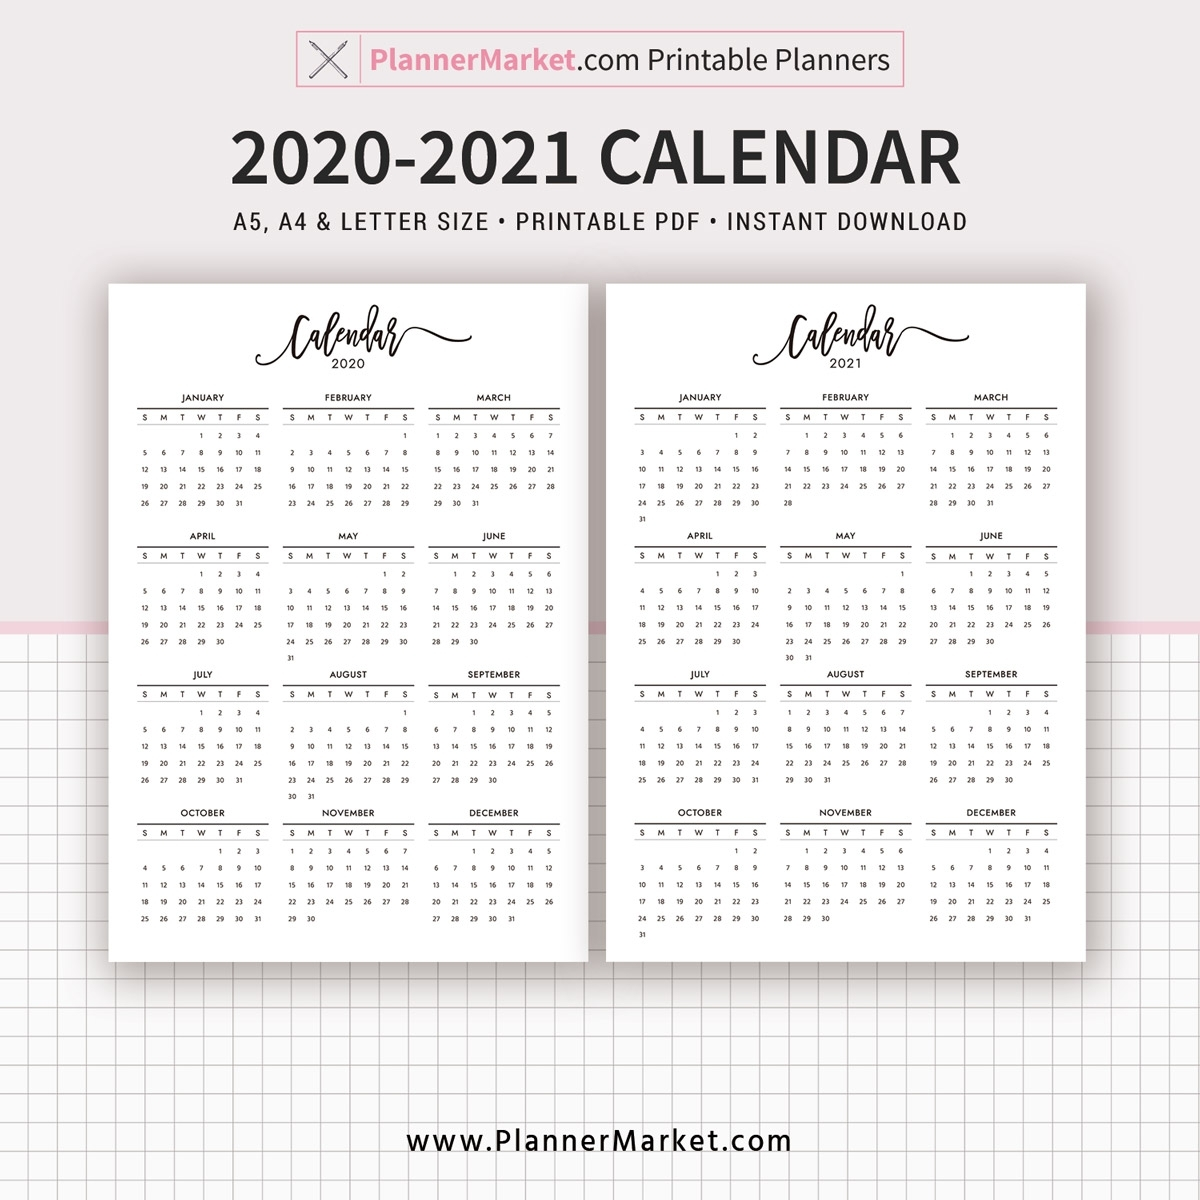 2020-2021 Calendar Printable, Year At A Glance, Filofax A5, A4, Letter  Size, Planner Template, Planner Inserts, Planner Refills, Instant Download